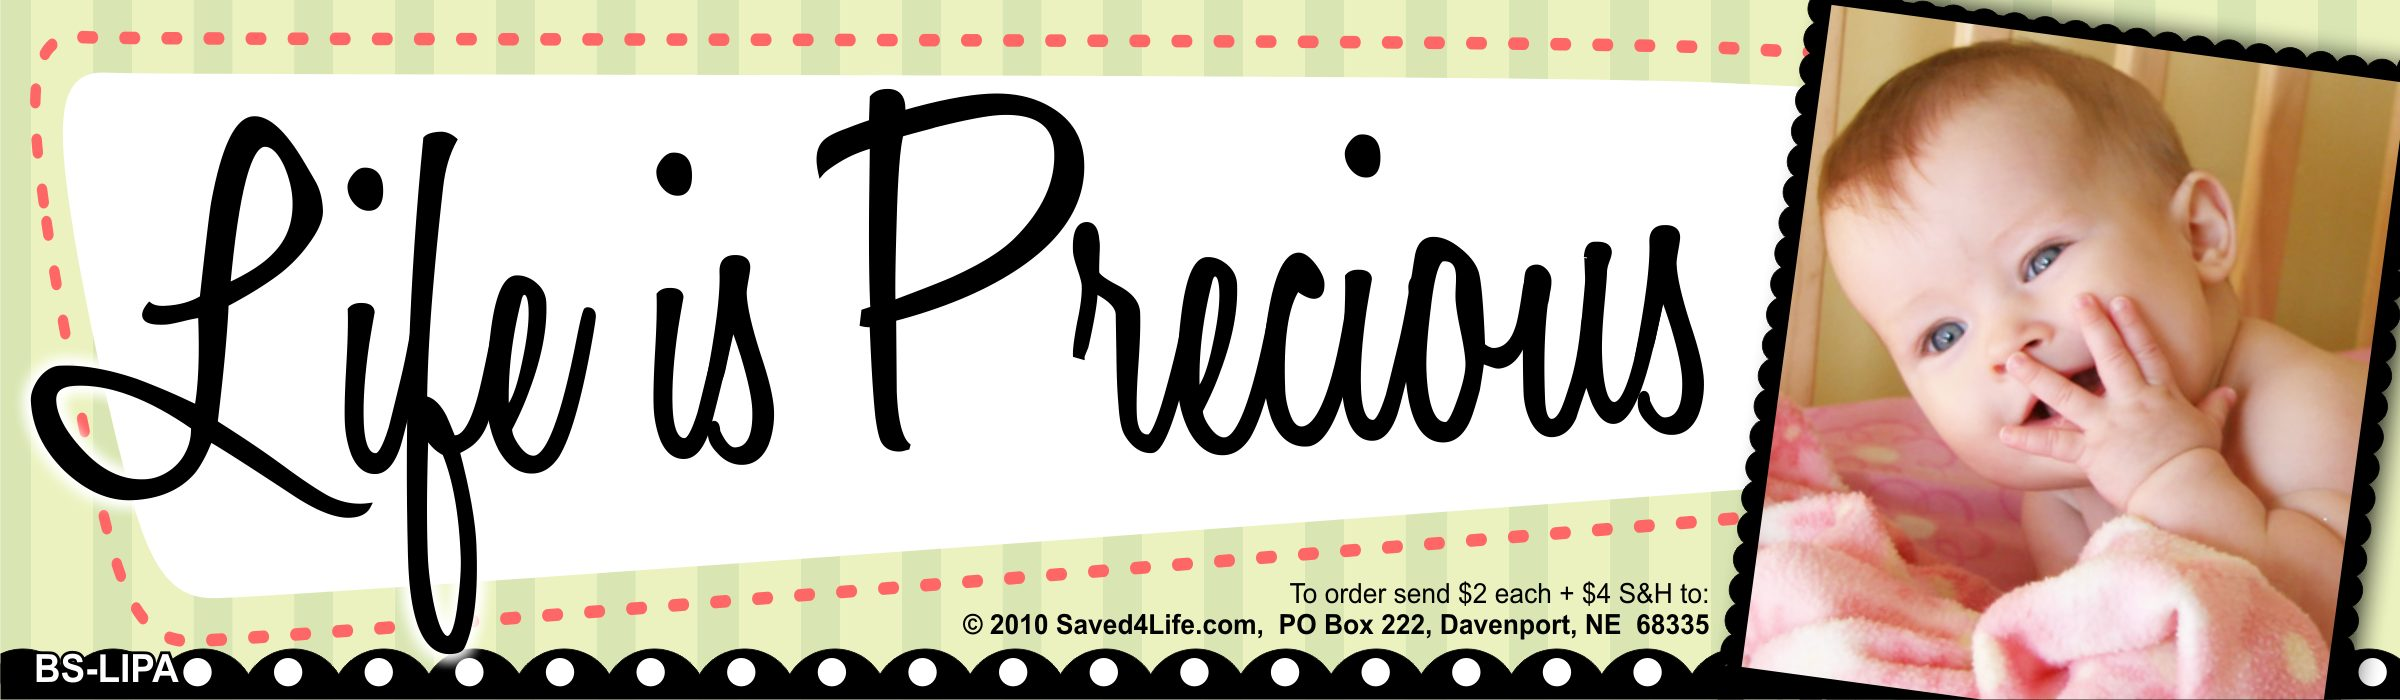 Life is Precious 3.5x12 Bumper Sticker